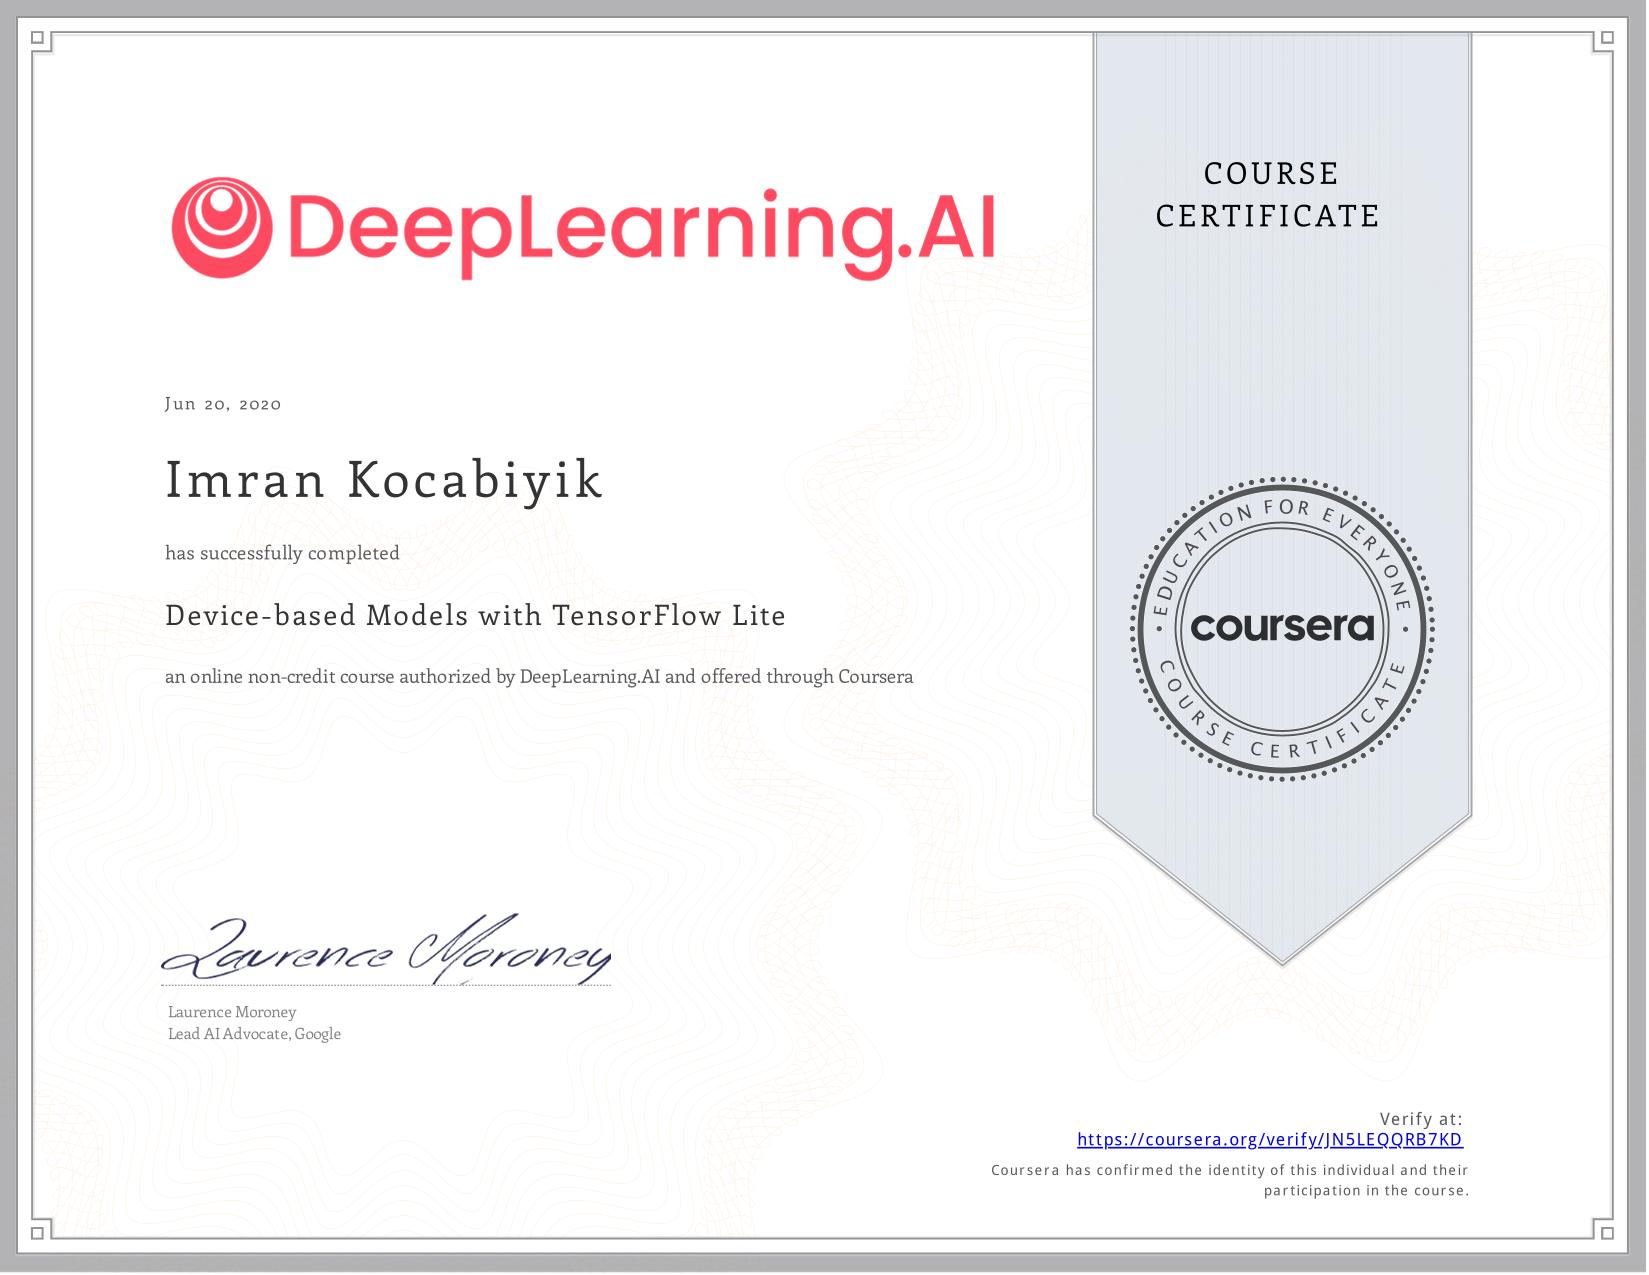 View certificate for Imran Kocabiyik, Device-based Models with TensorFlow Lite, an online non-credit course authorized by deeplearning.ai and offered through Coursera